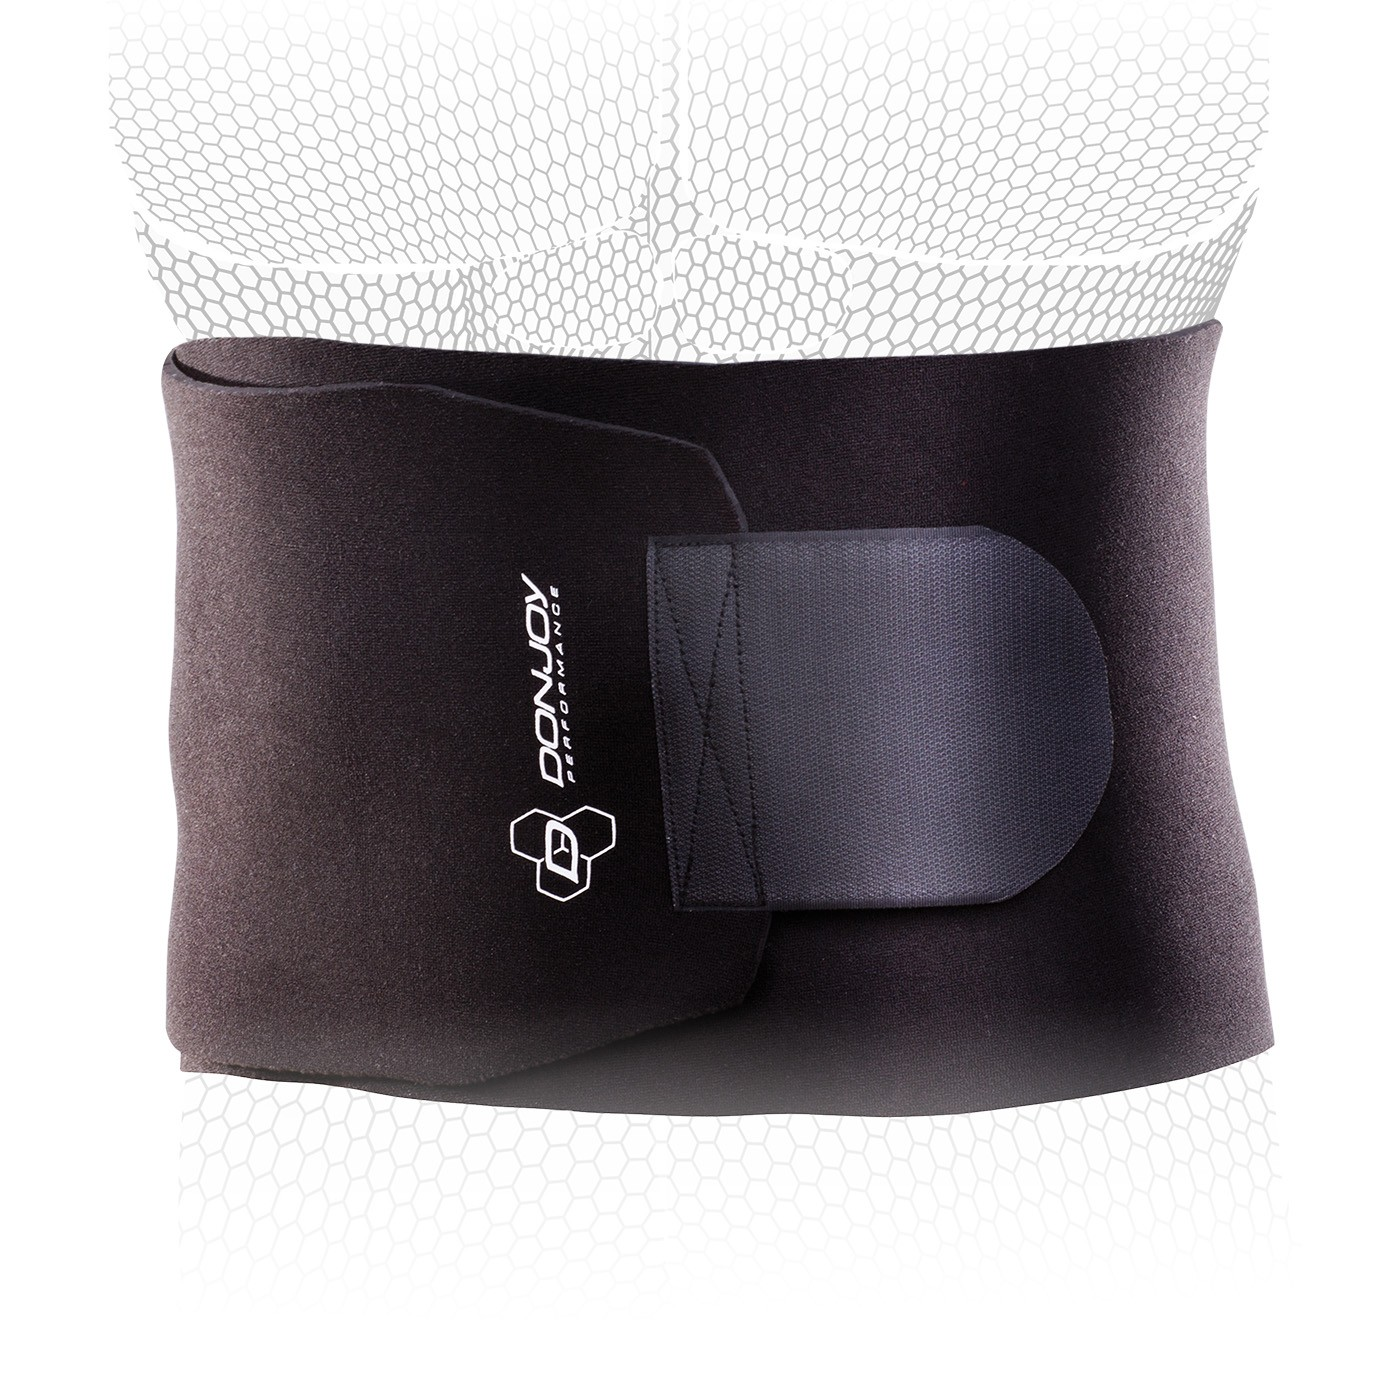 DonJoy Performance Waist Trimmer - 1